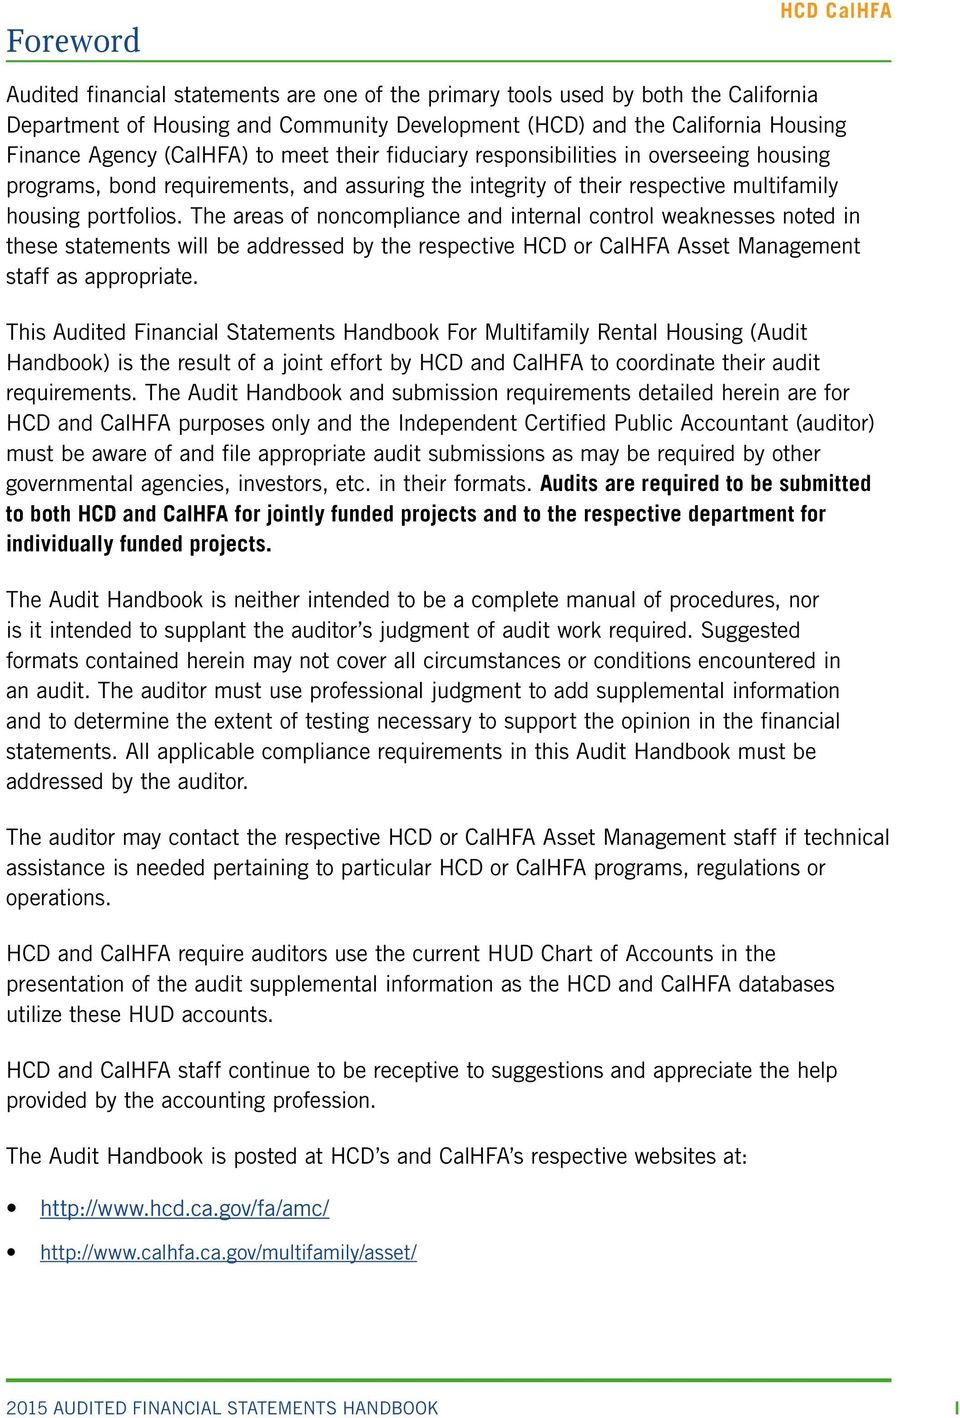 The areas of noncompliance and internal control weaknesses noted in these statements will be addressed by the respective HCD or CalHFA Asset Management staff as appropriate.